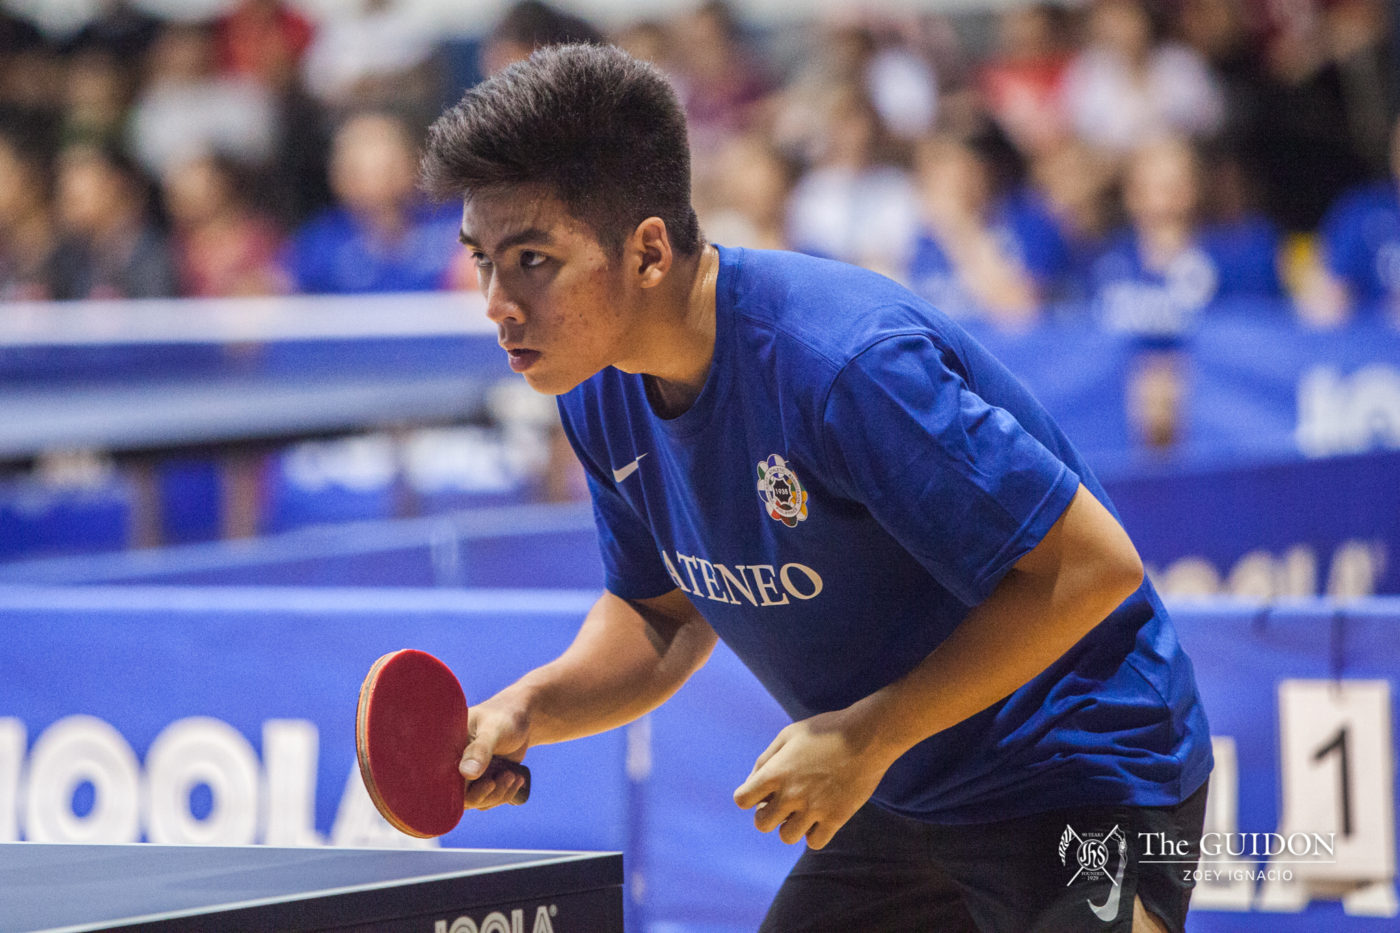 Ateneo Men's Table Tennis end difficult season with defeats to DLSU, AdU - The GUIDON